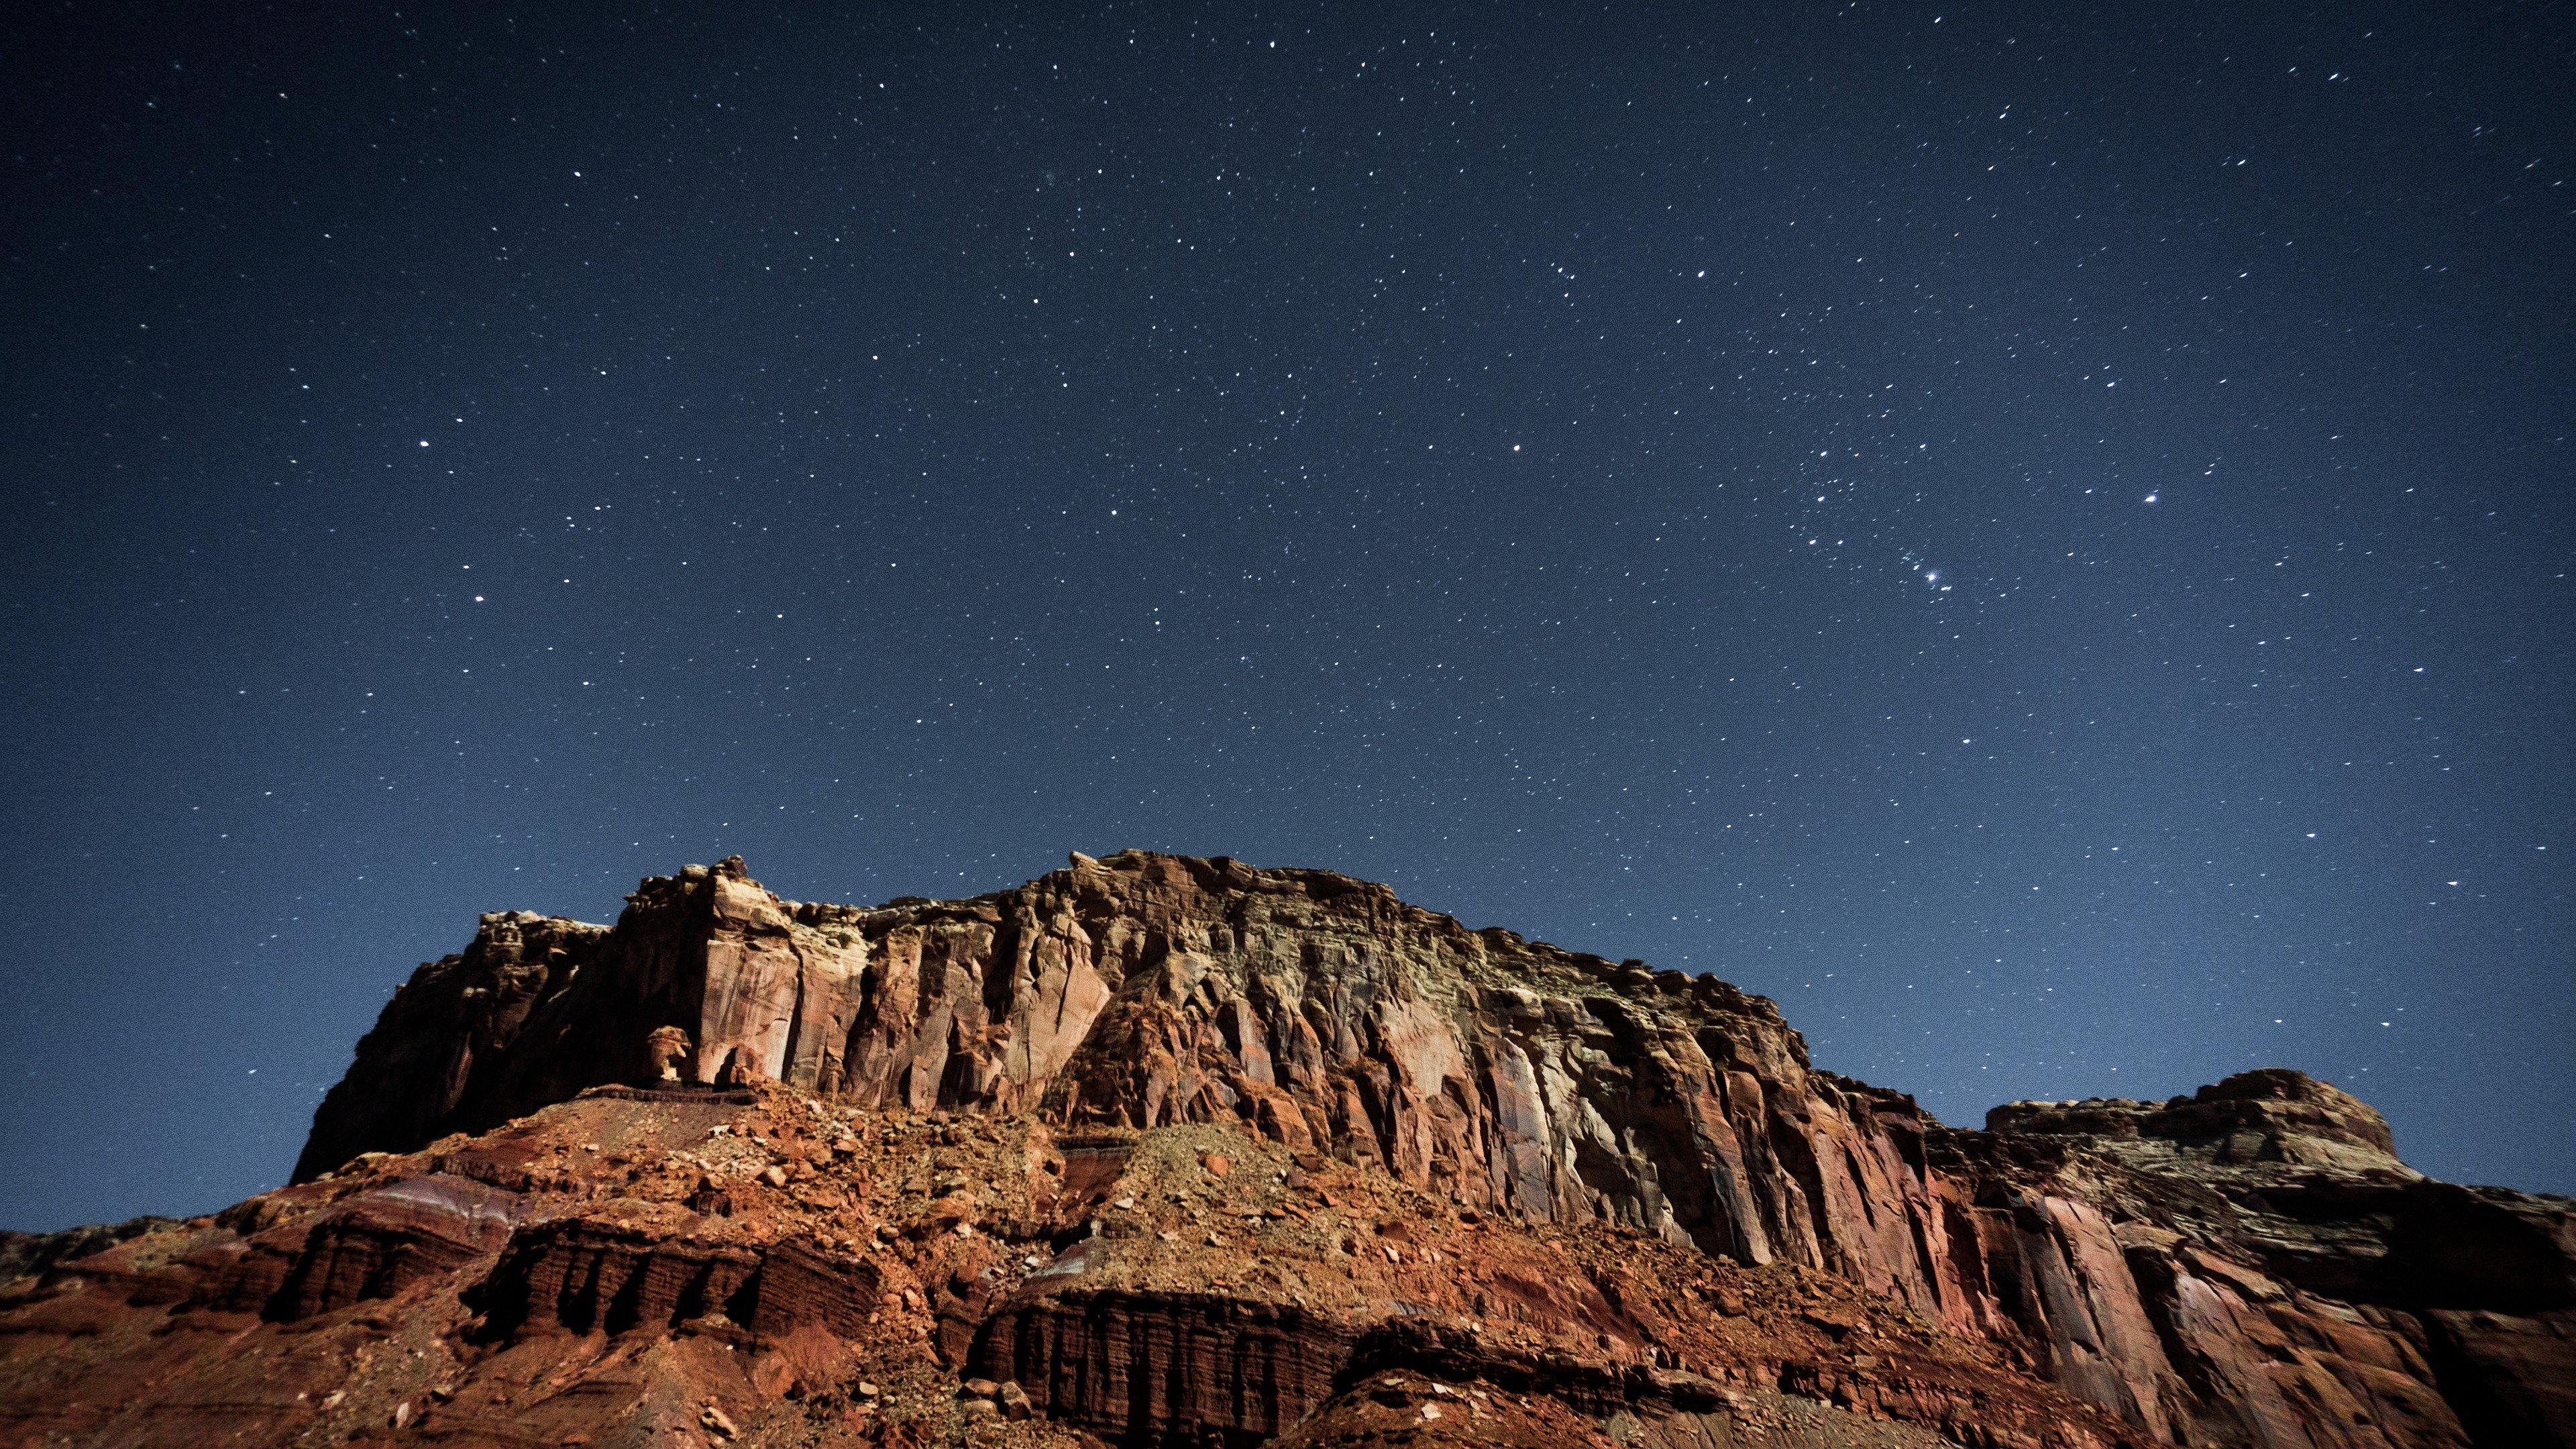 Starry wallpapers photos and desktop backgrounds up to 8k - Starry sky 4k ...